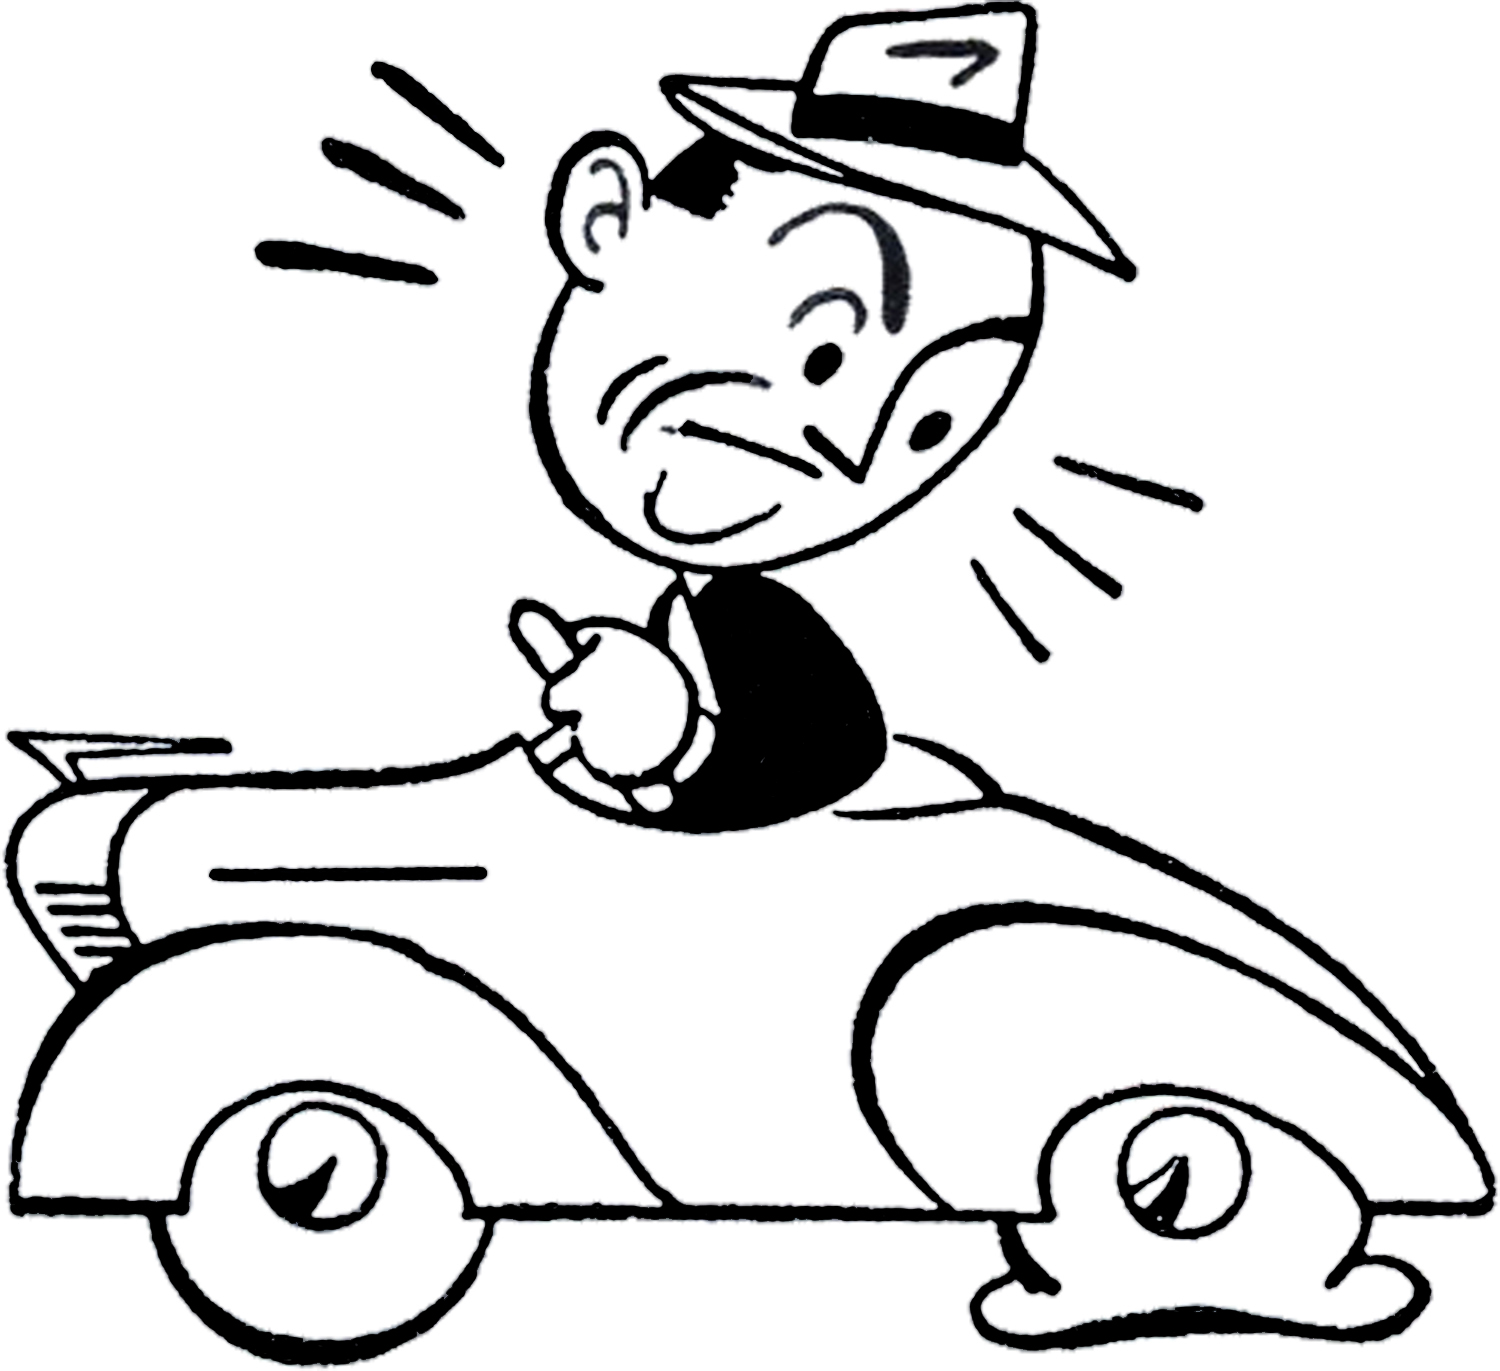 Retro Car Trouble Clip Art - The Graphics Fairy